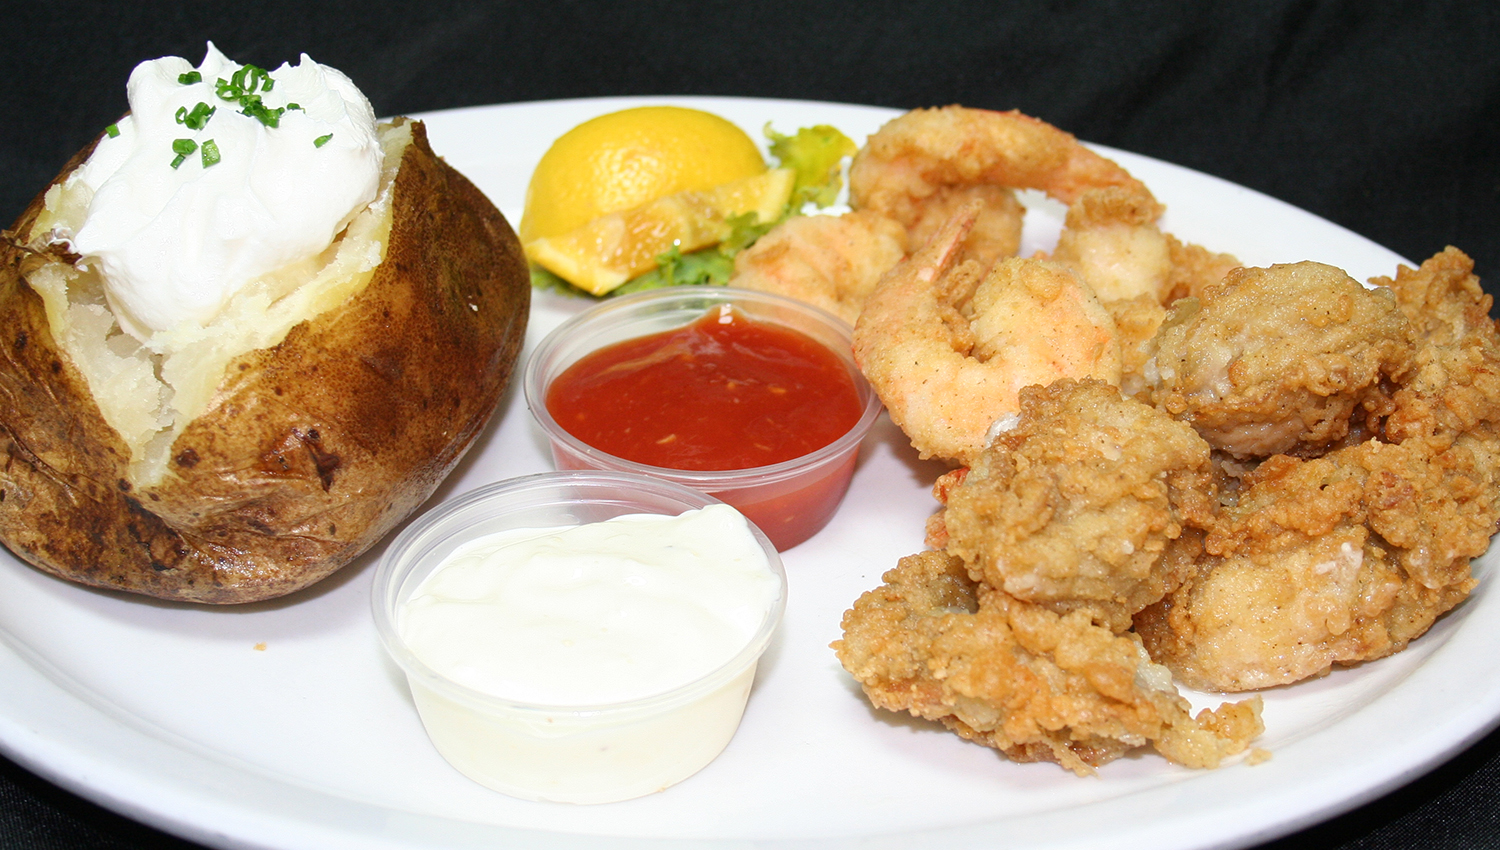 fried combo platter with a baked potato and dipping sauces